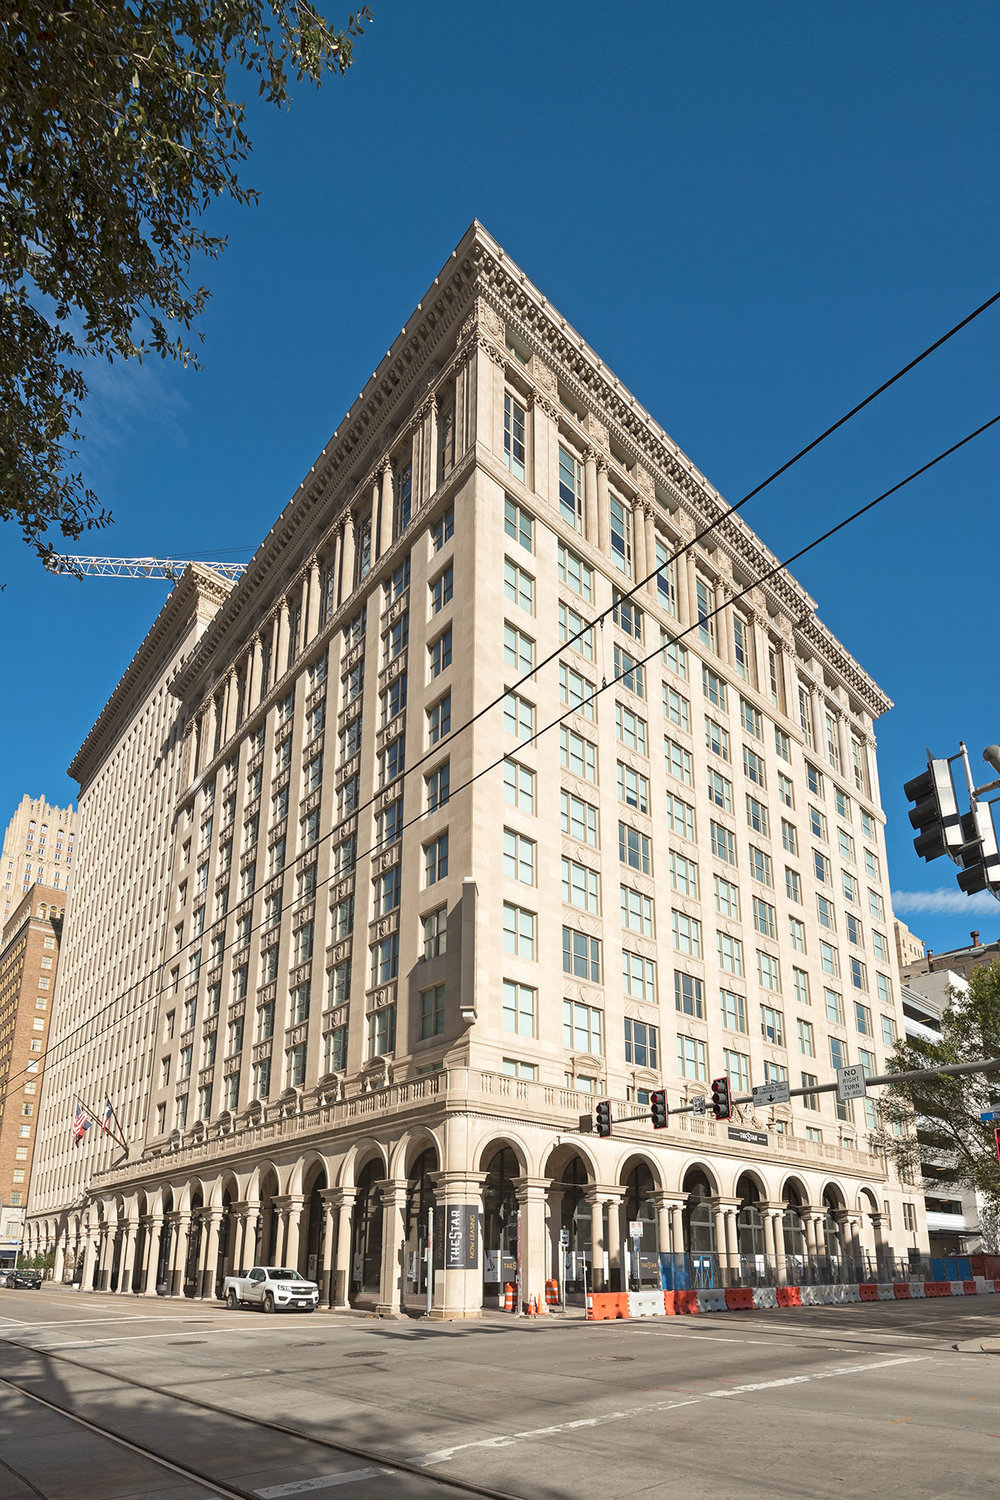 Kip Platt / Provident Realty Group for repurposing the Texas Company Building (1915, 1936, 1959) in downtown Houston /  photo by Jim Parsons